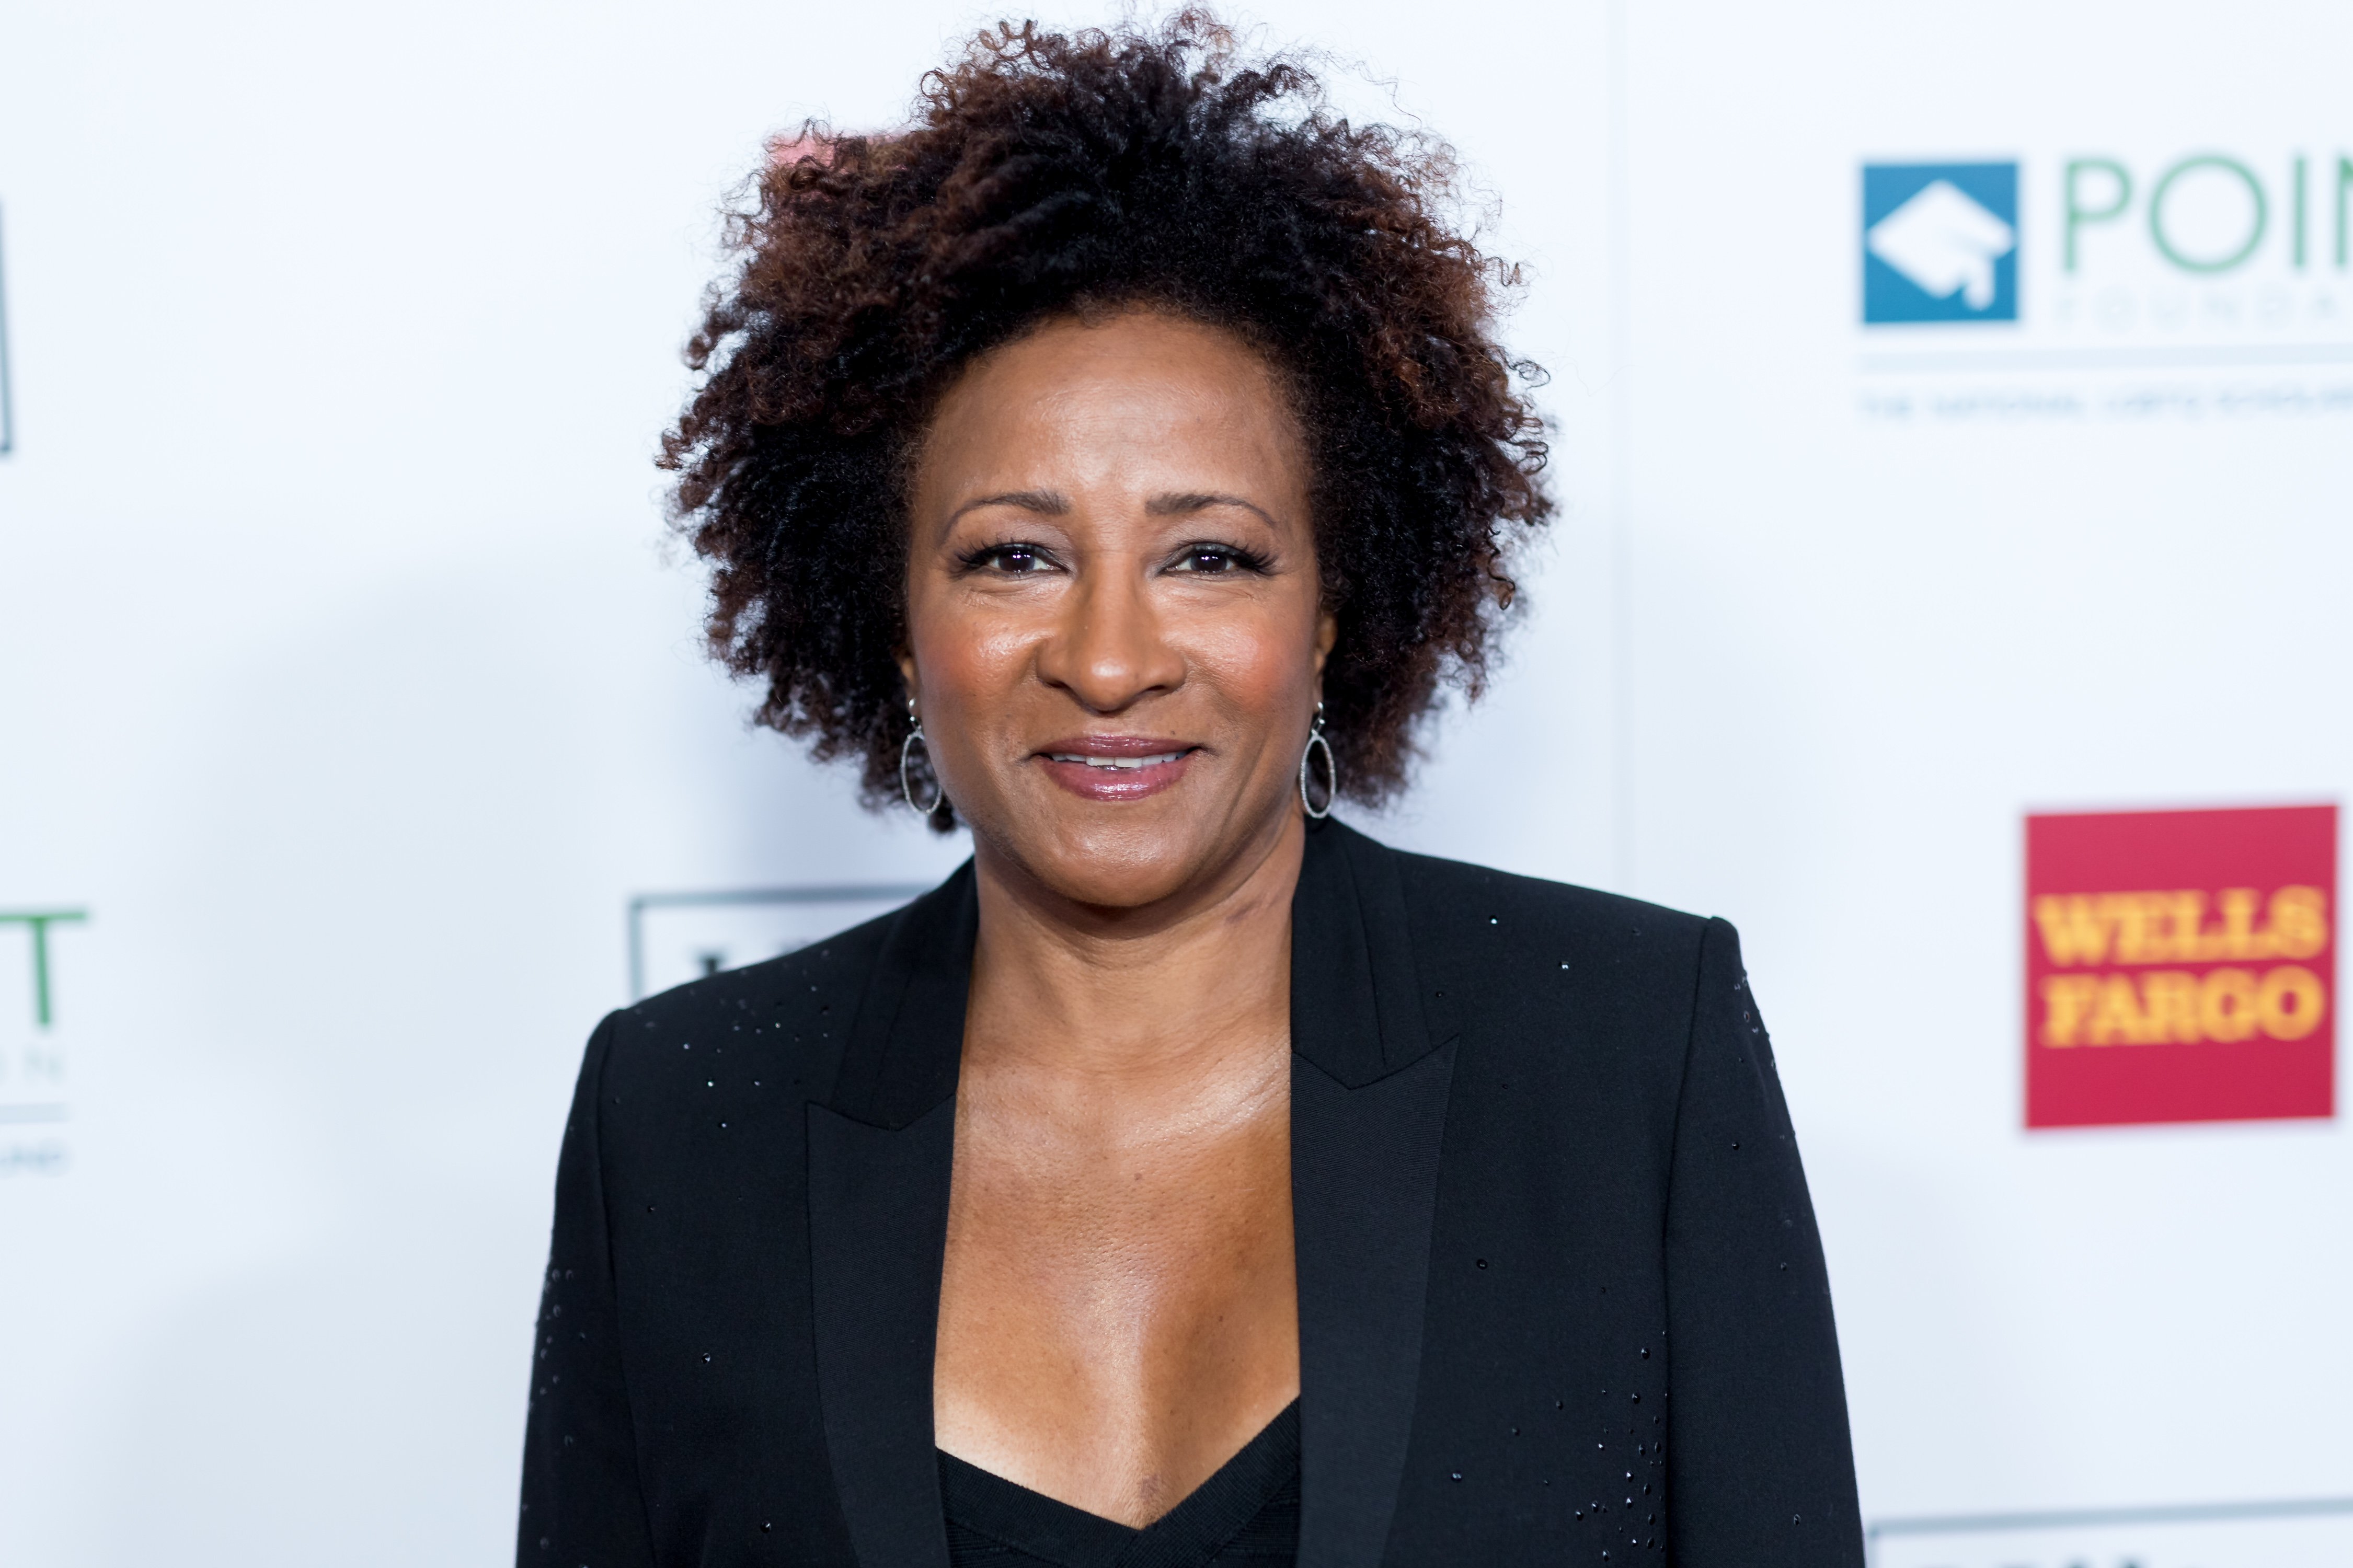 Wanda Sykes at the Point Honors Los Angeles where she was an honoree in 2017. | Photo: Getty Images